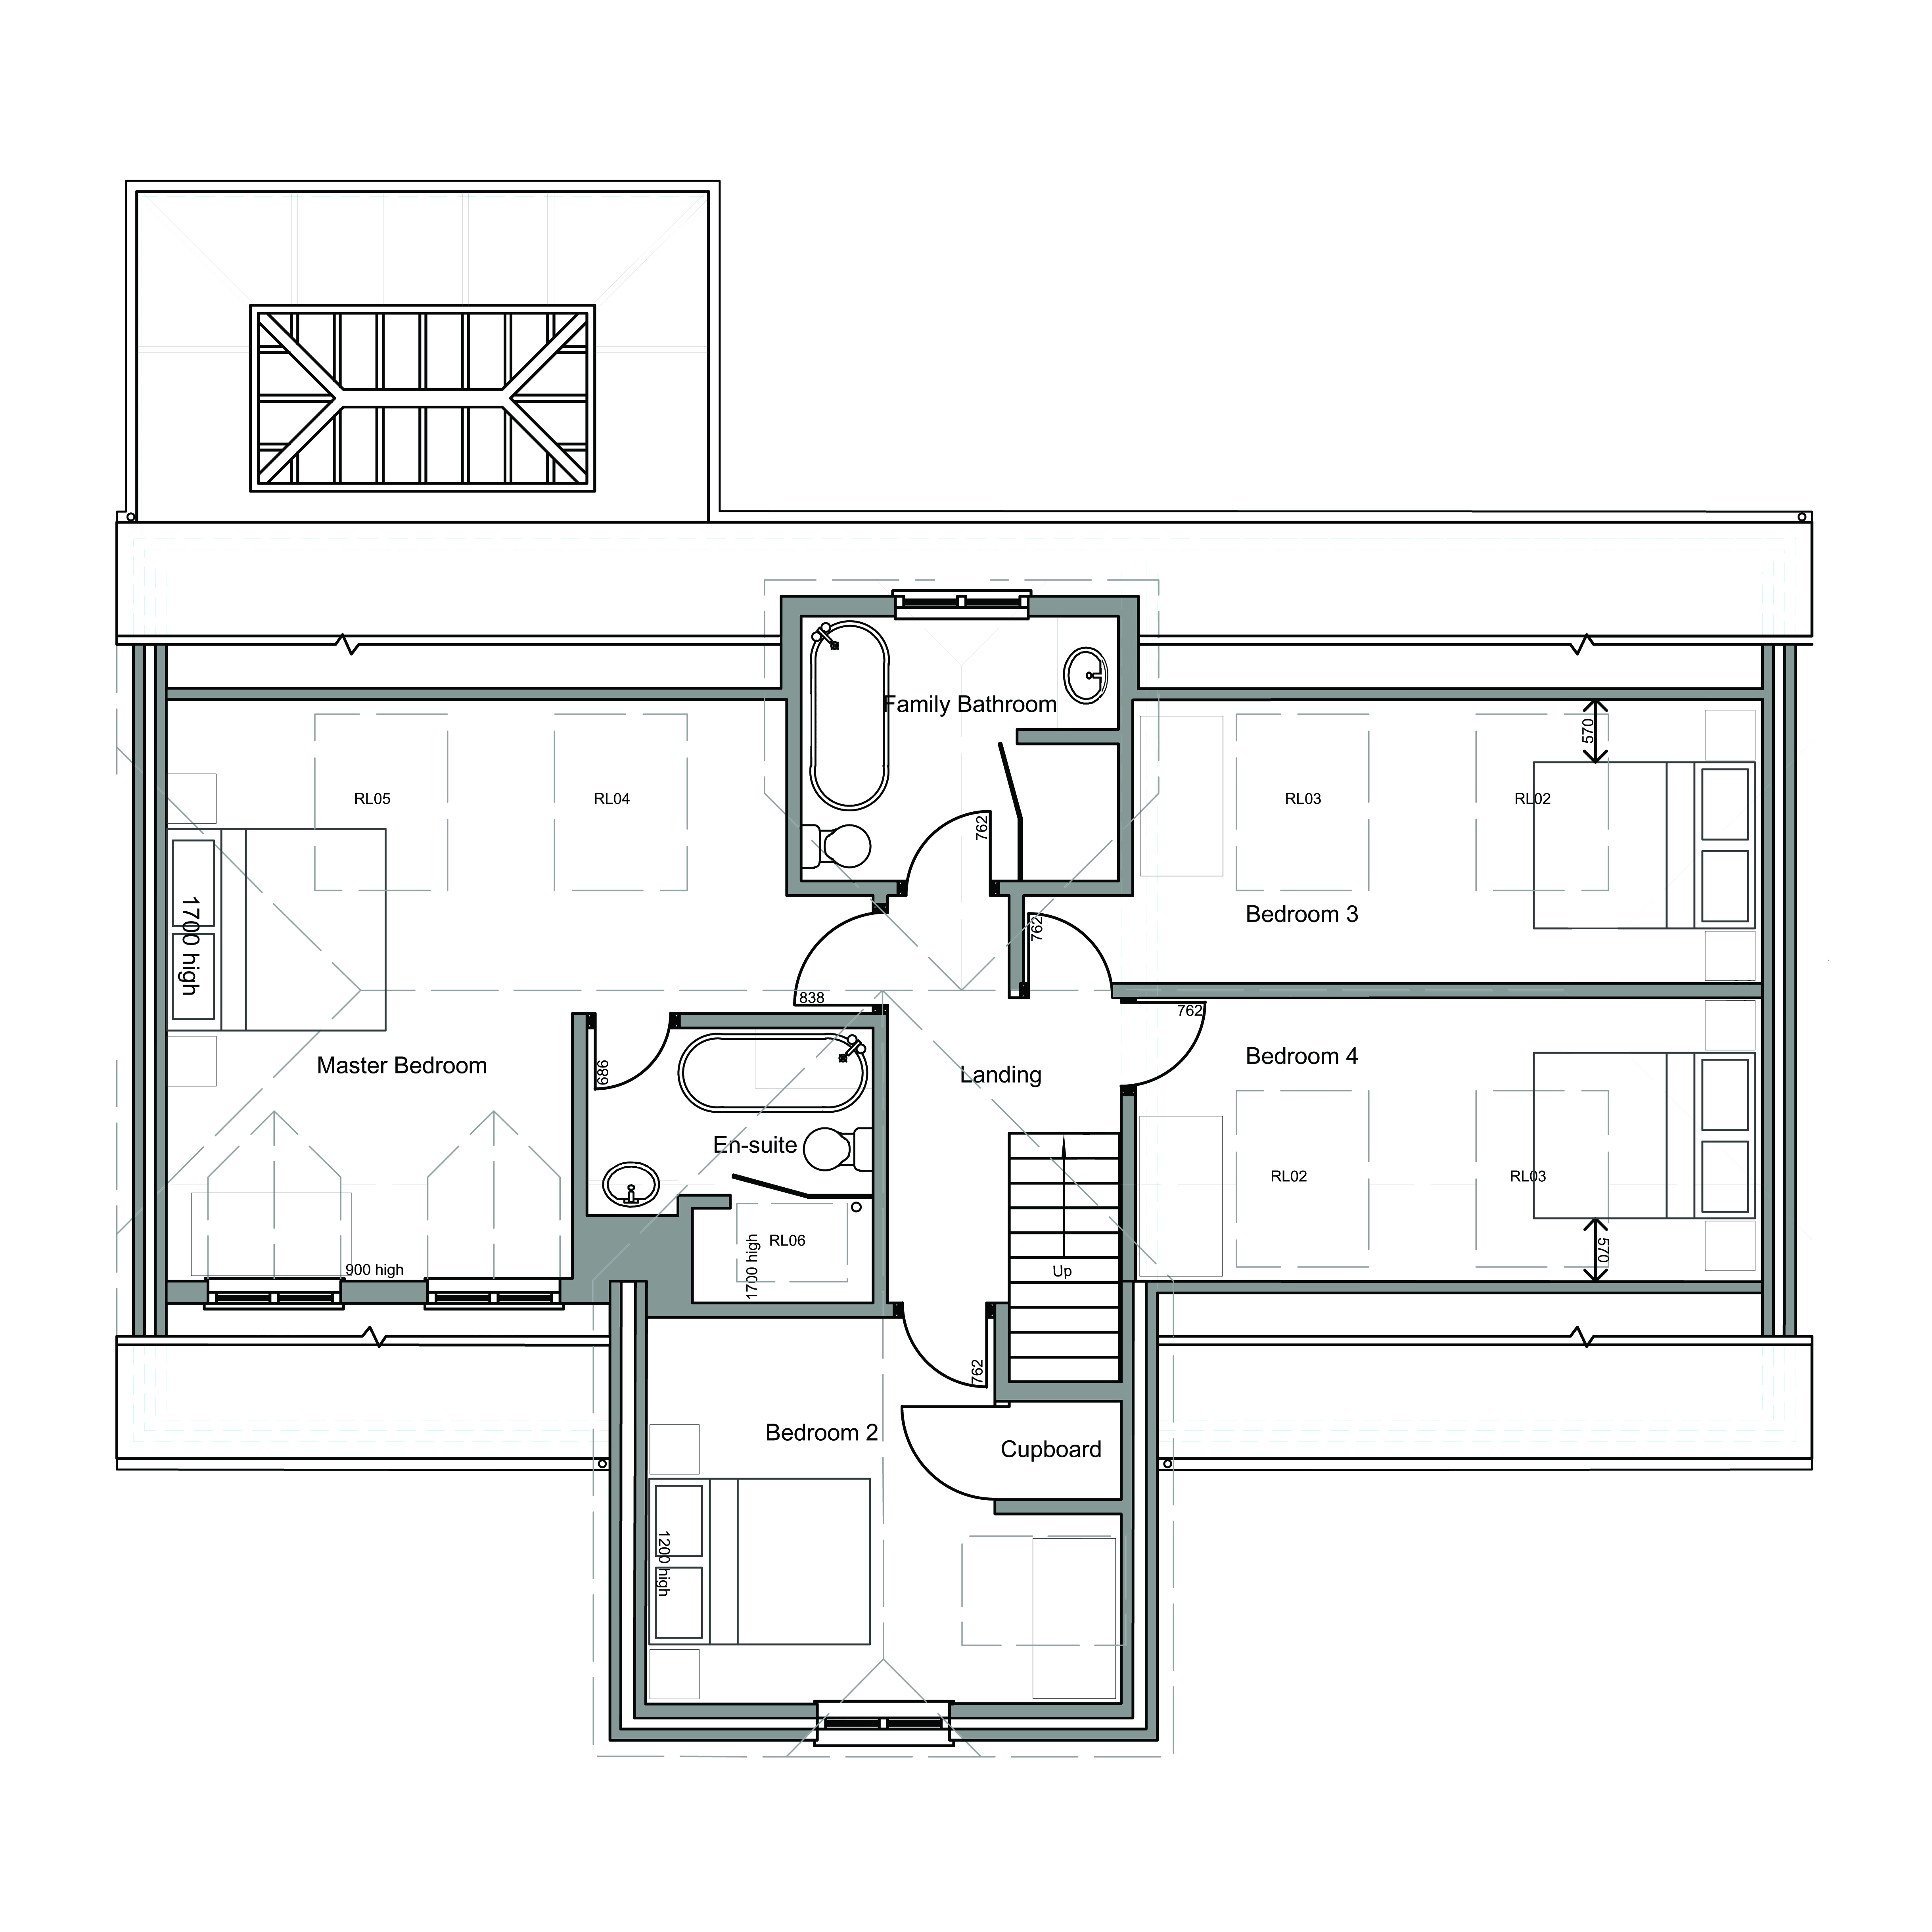 Bungalow converted into 4 bedroom house wiltshire first for 4 bedroom house designs uk